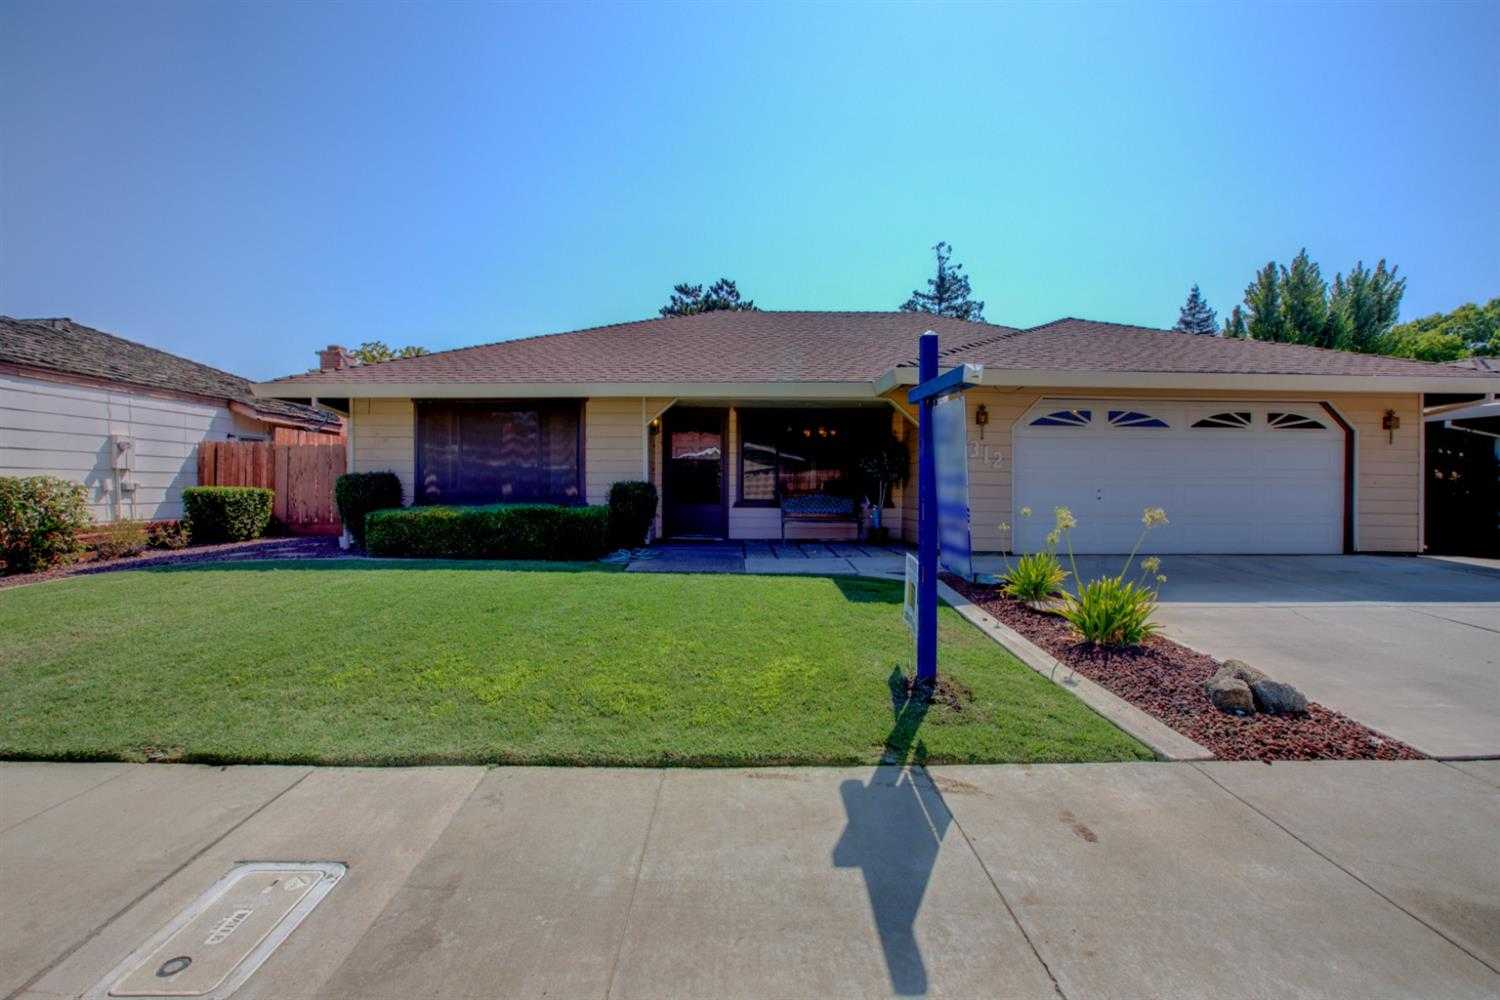 $289,000 - 4Br/2Ba -  for Sale in Merced